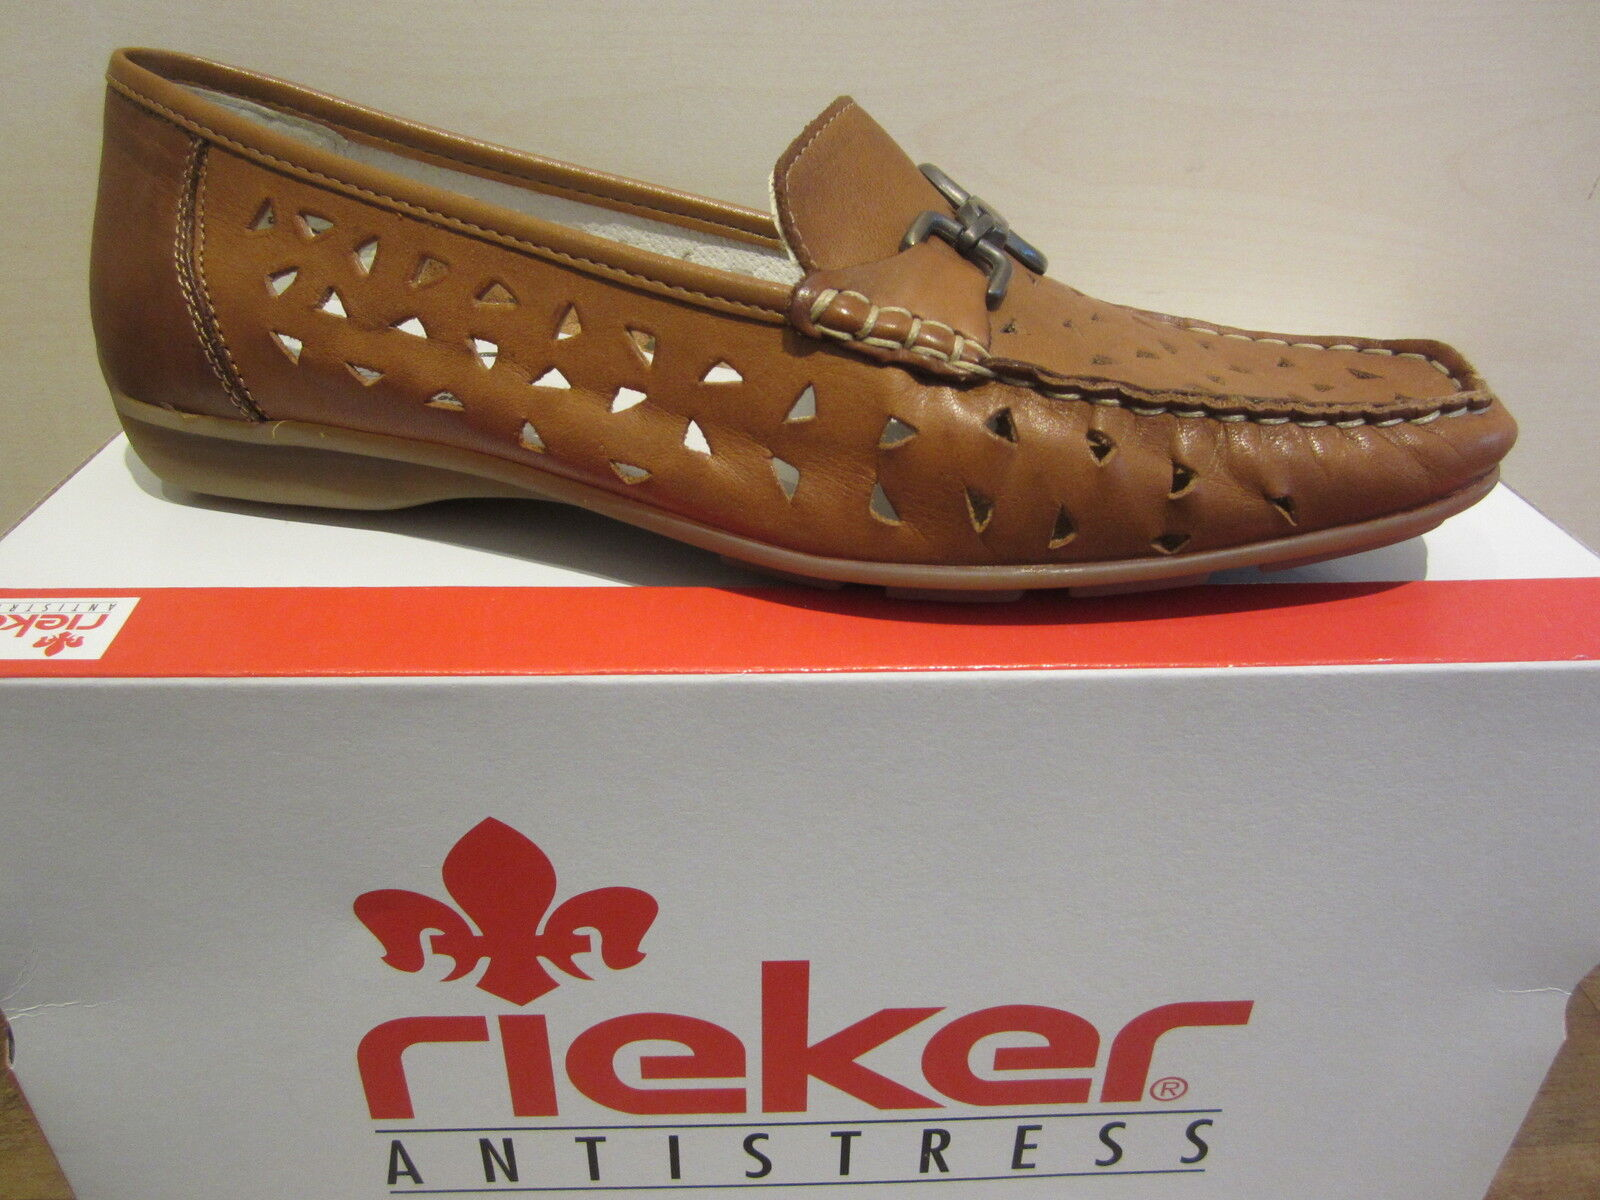 RIEKER Slipper interna, Pelle in Pelle con suola interna, Slipper Marrone NUOVO 2b43e4